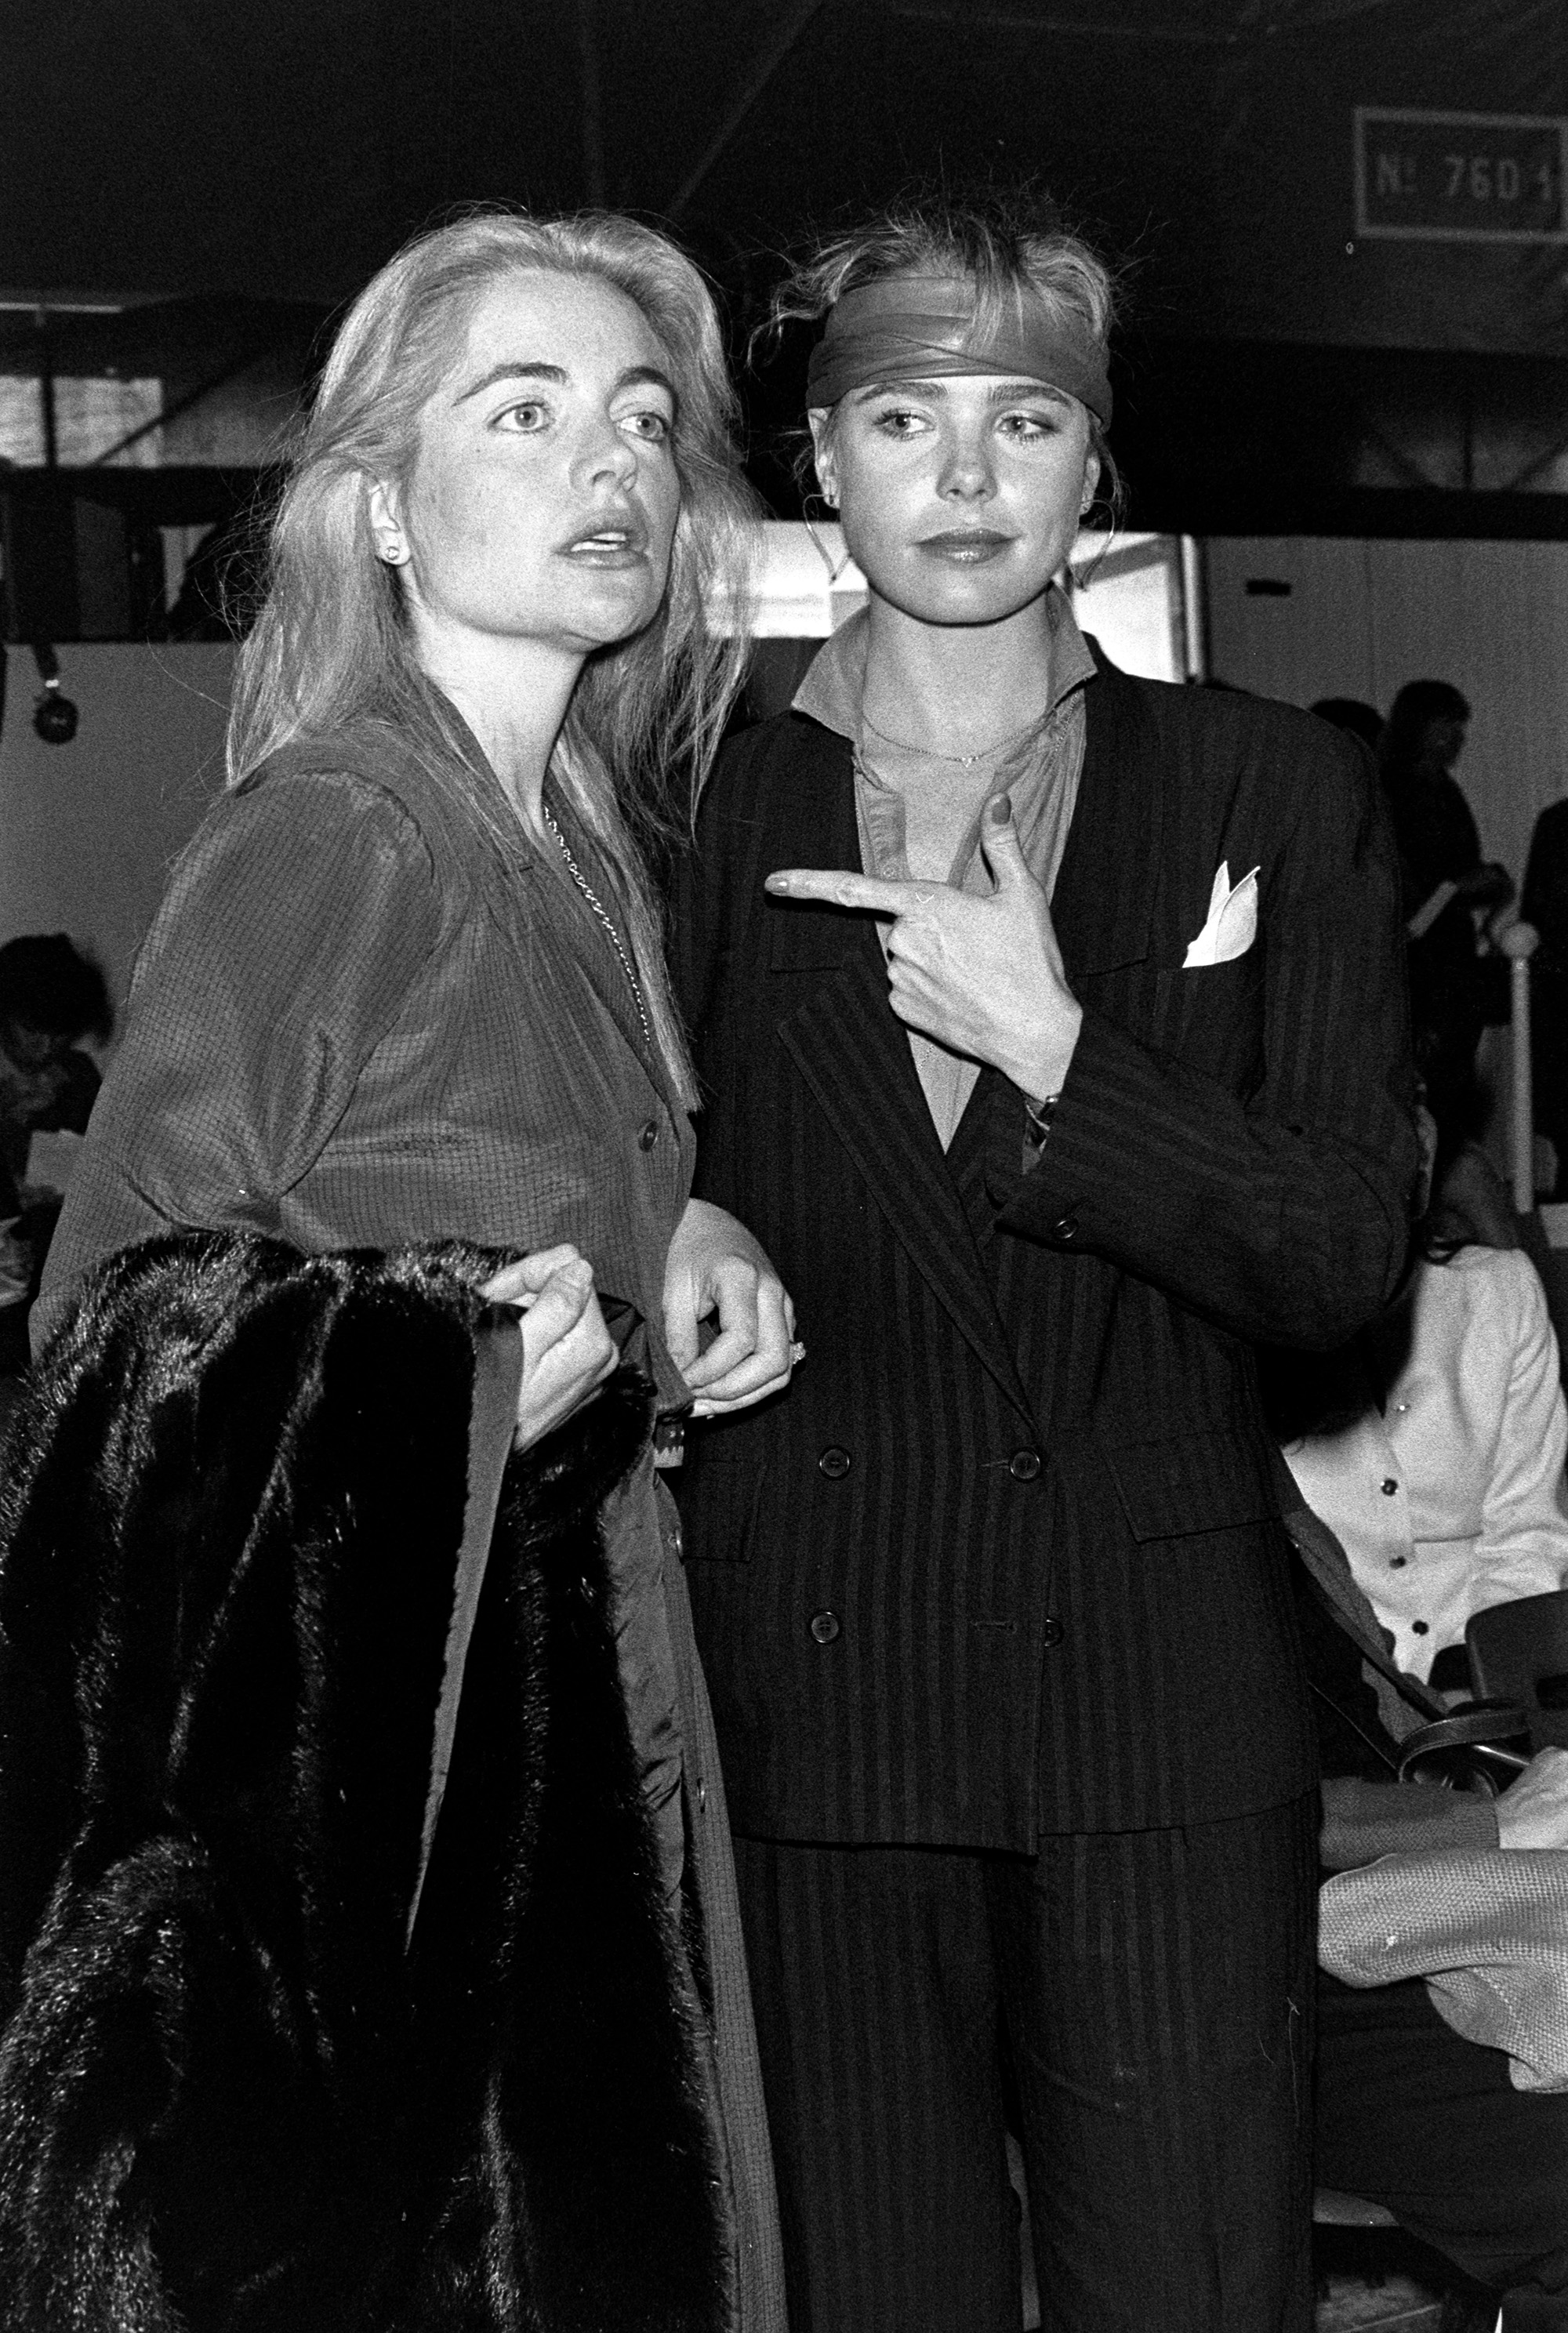 Christian Dior Fall 1981 Ready to Wear Runway - 7 Apr 1981Mariel Hemingway and Margaux Hemingway attend the show7 Apr 1981